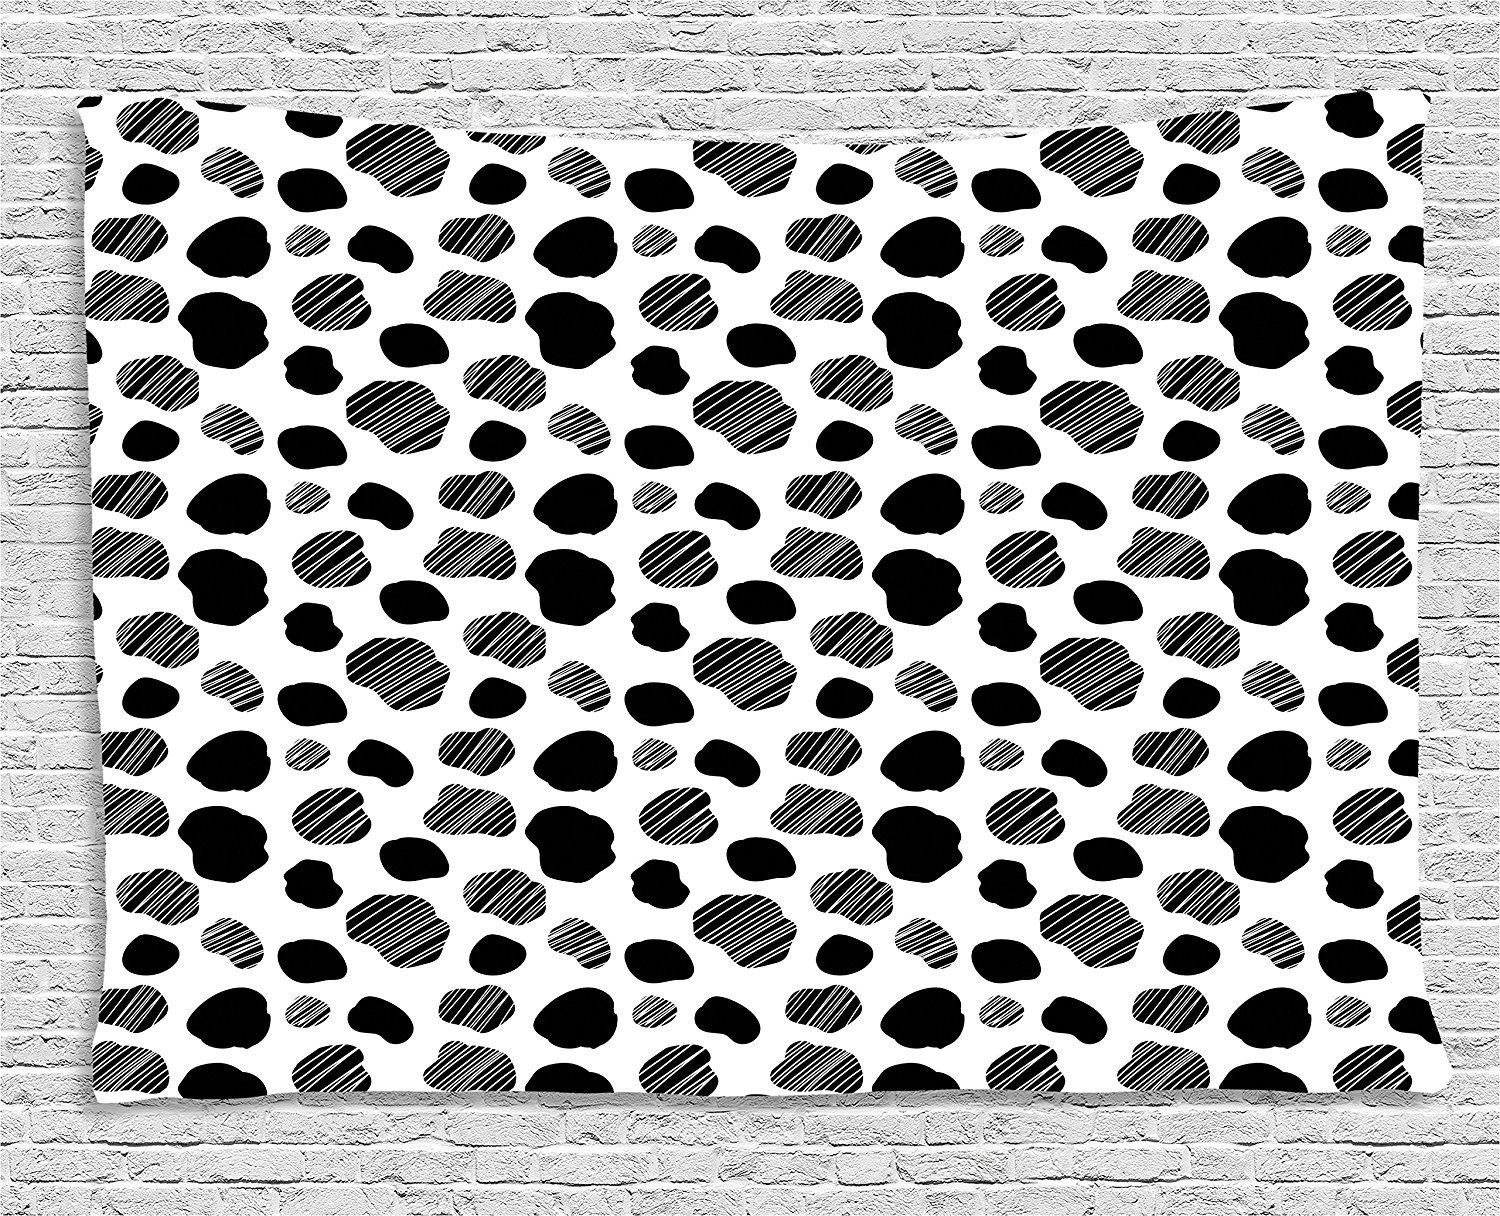 Cow Print Tapestry, Black and White Striped Dots with Abstract Style Farm Animal Hide Agriculture, Wall Hanging for Bedroom Living Room Dorm, 80 W X 60 L Inches, Black White